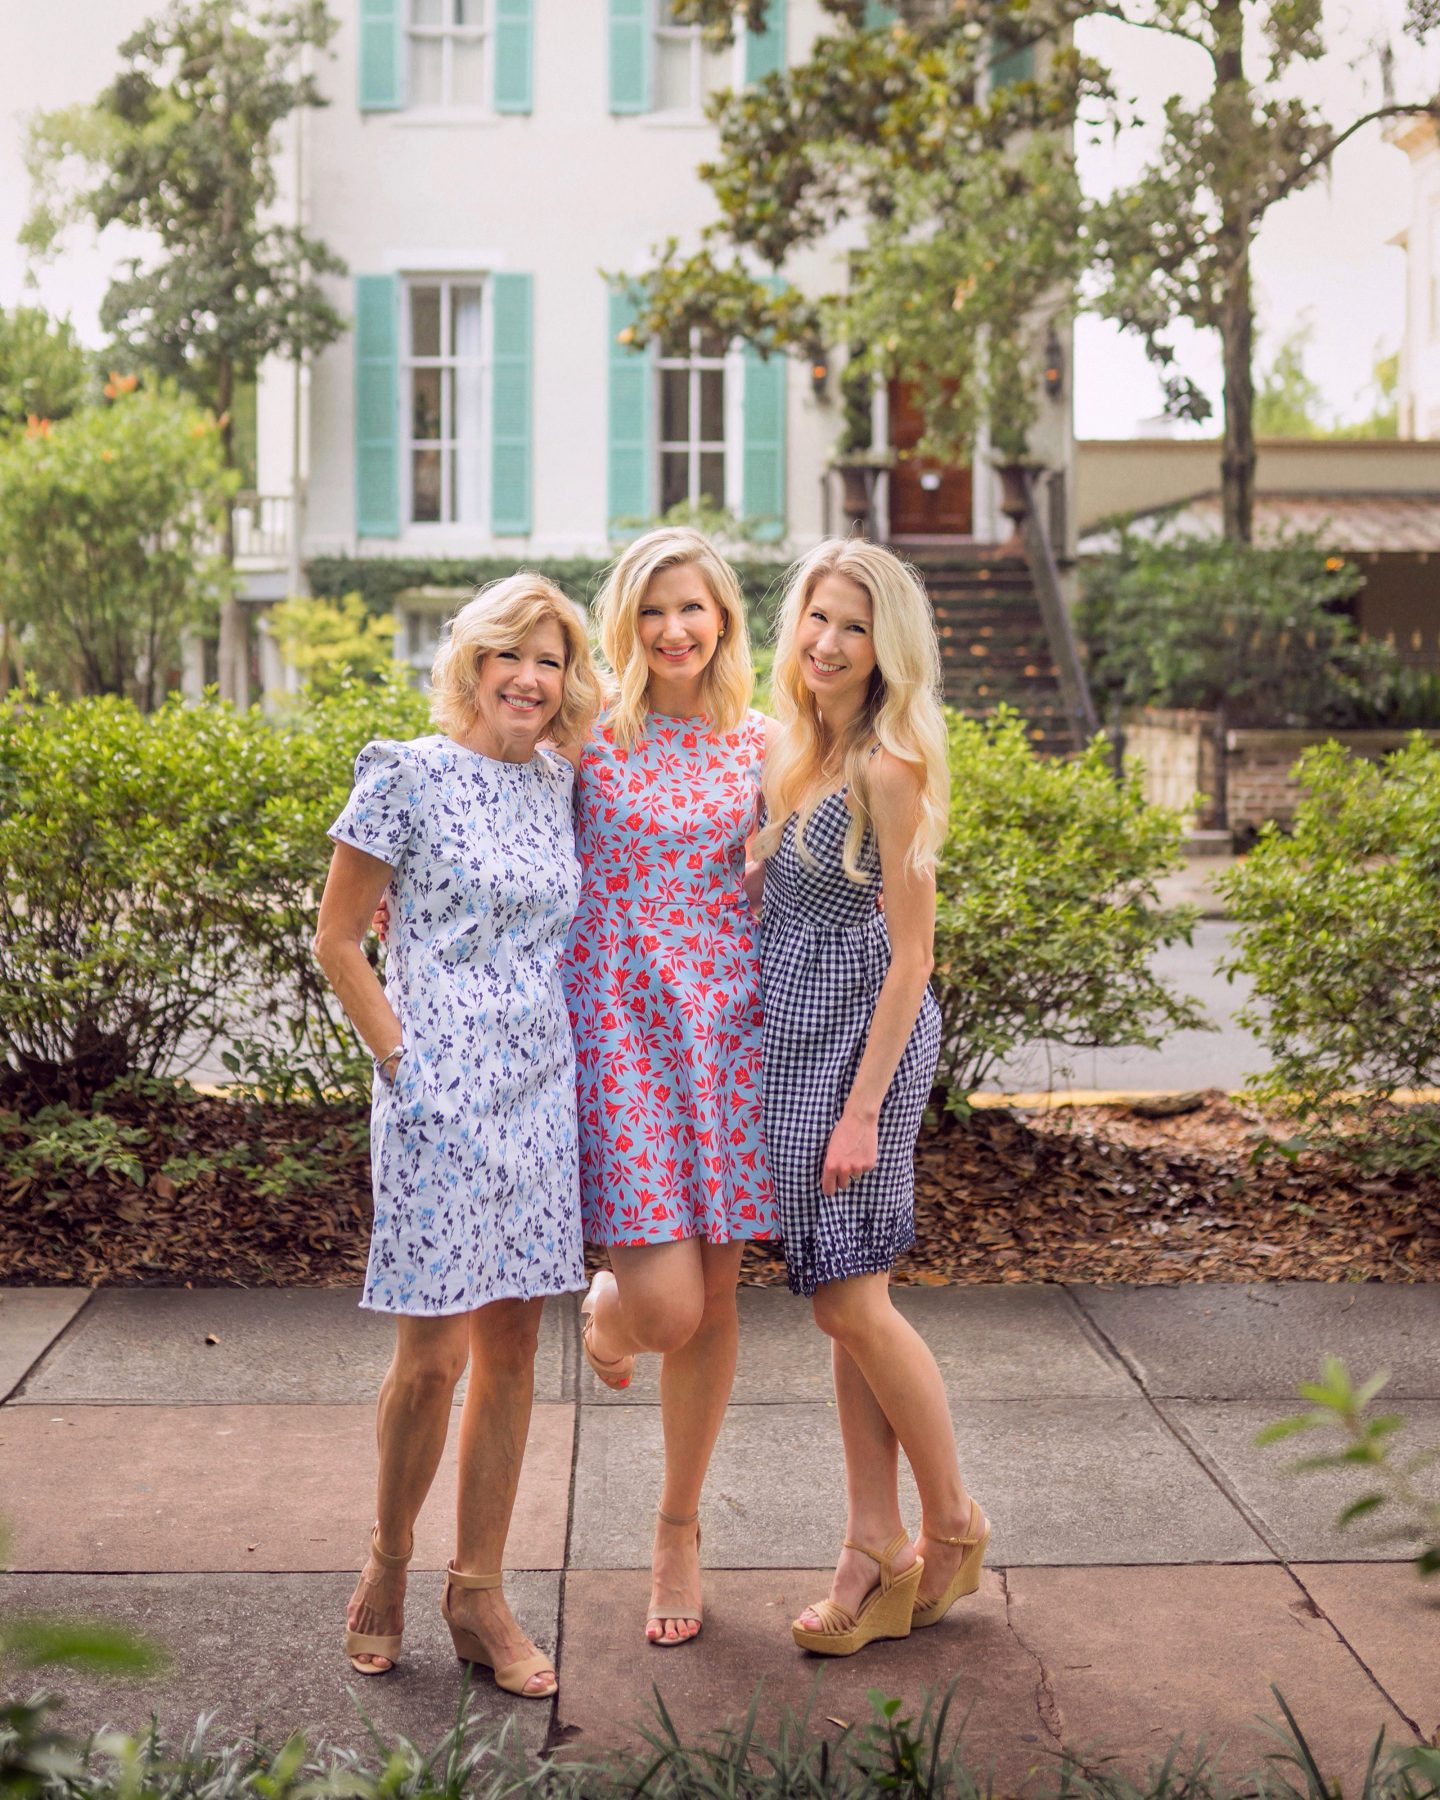 Ashley Brooke with her mom and sister in Savannah, GA on www.ashleybrookedesigns.com